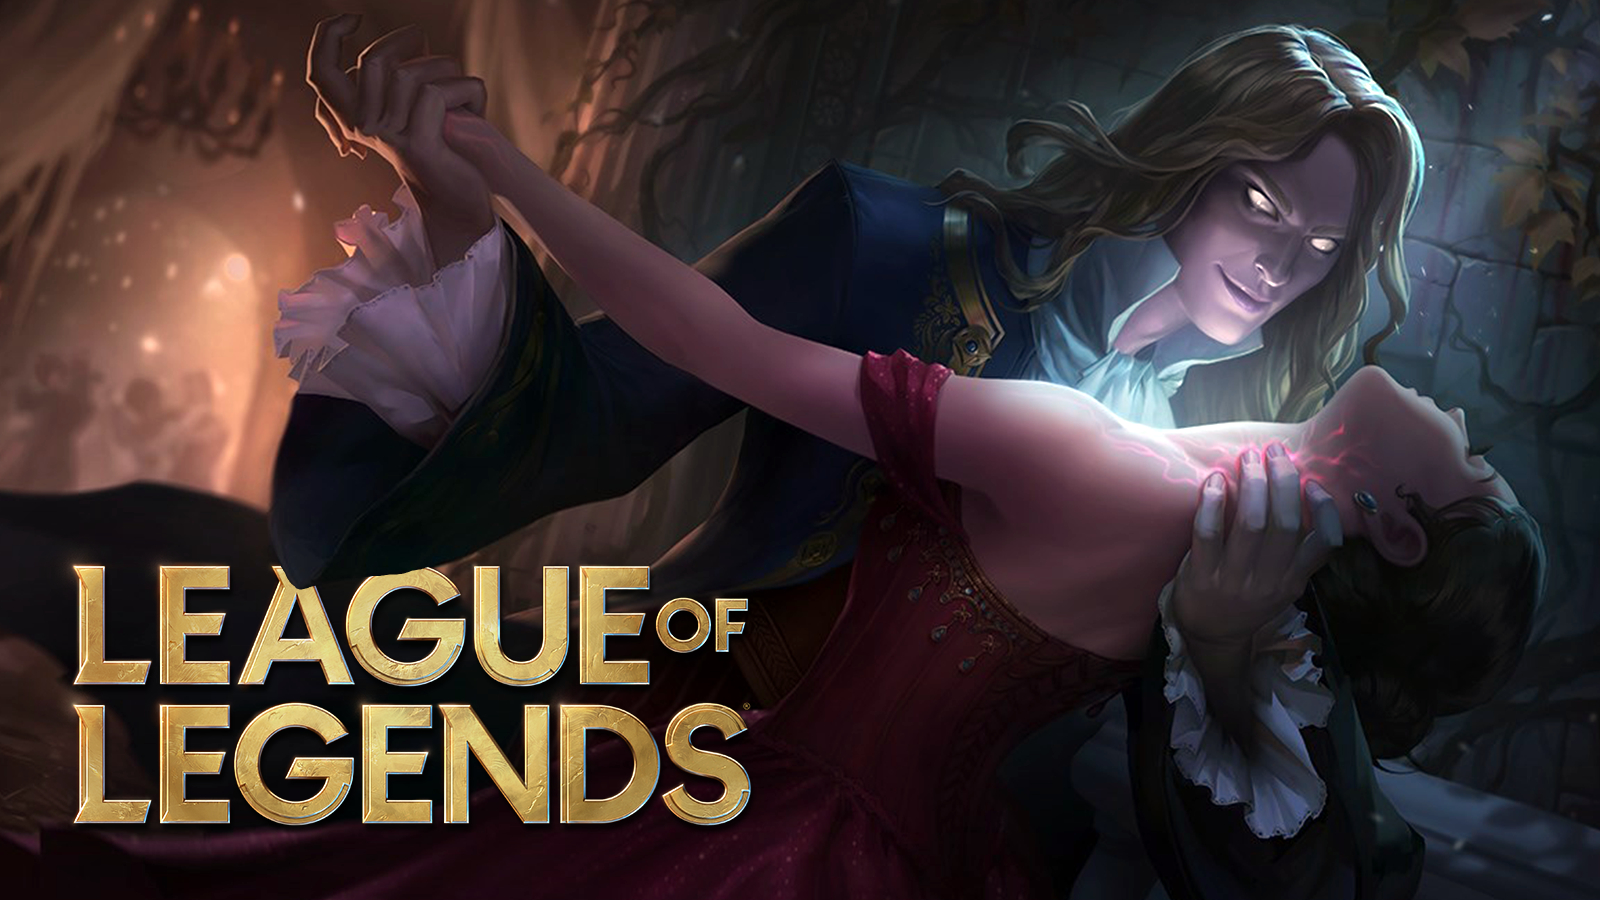 Vladimir goes for the kill in League of Legends.